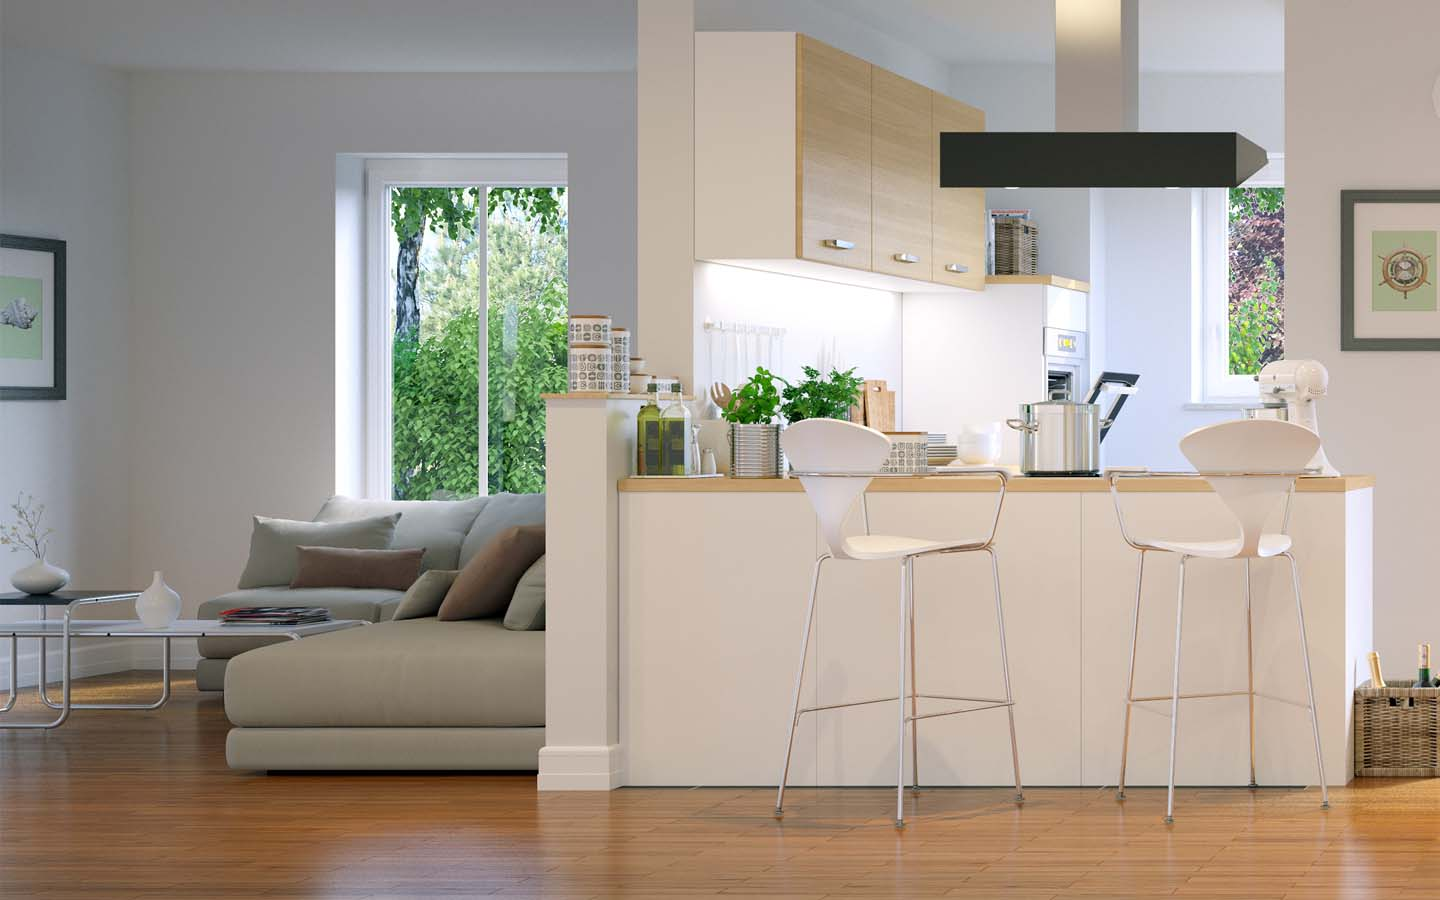 Space is one of the basic elements of interior design.